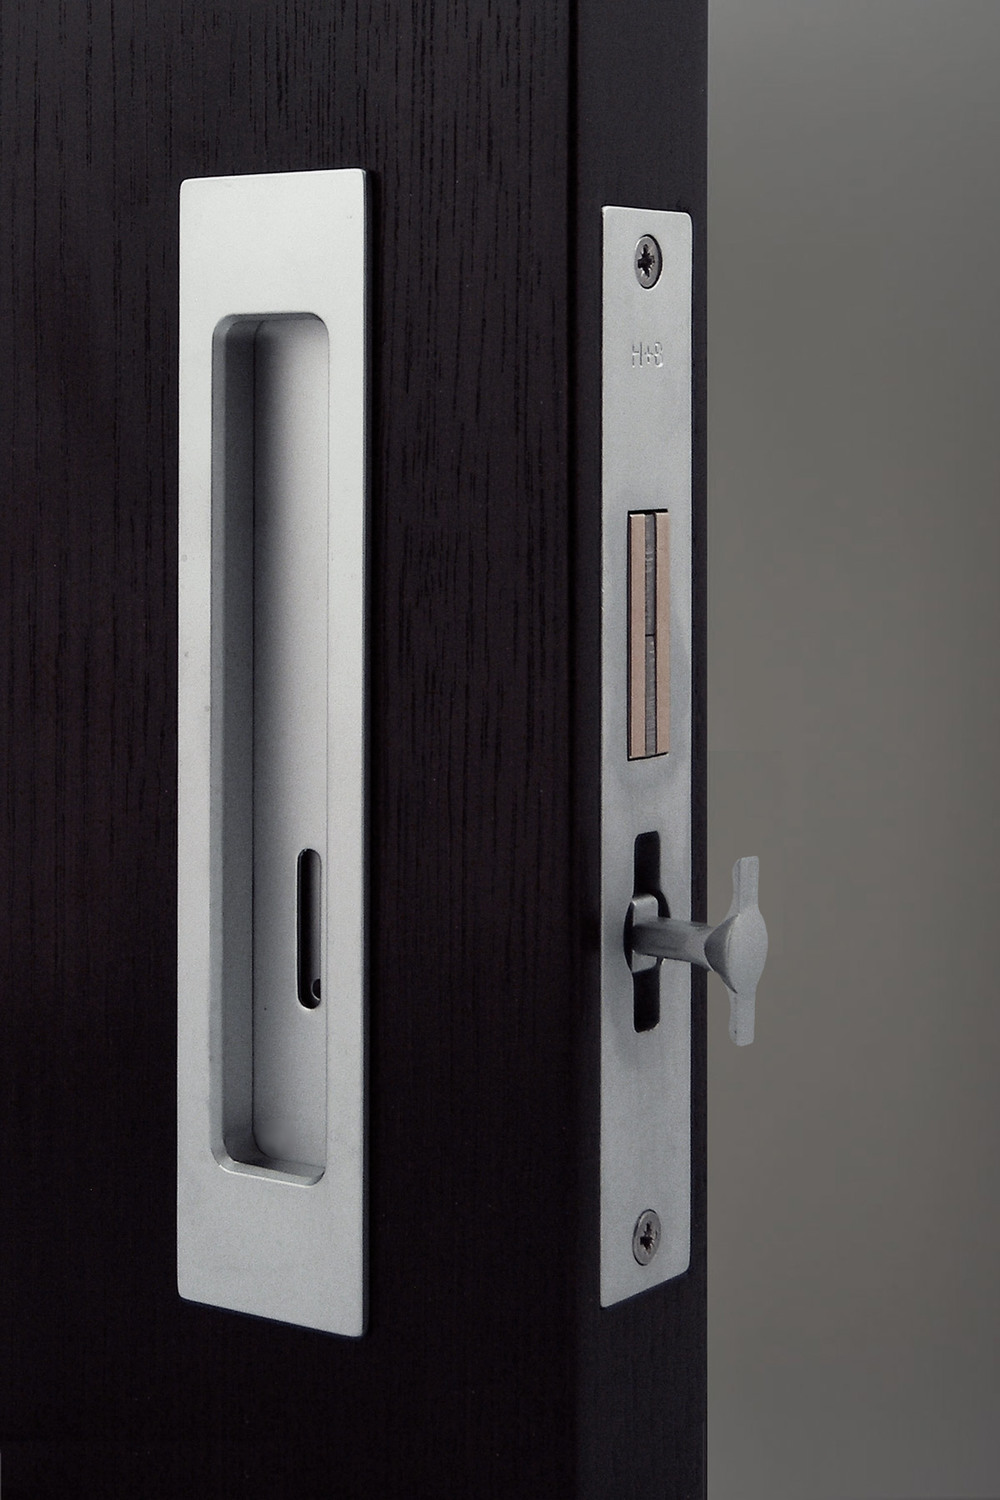 HB 690 : Sliding Pocket Door Privacy Lock Set